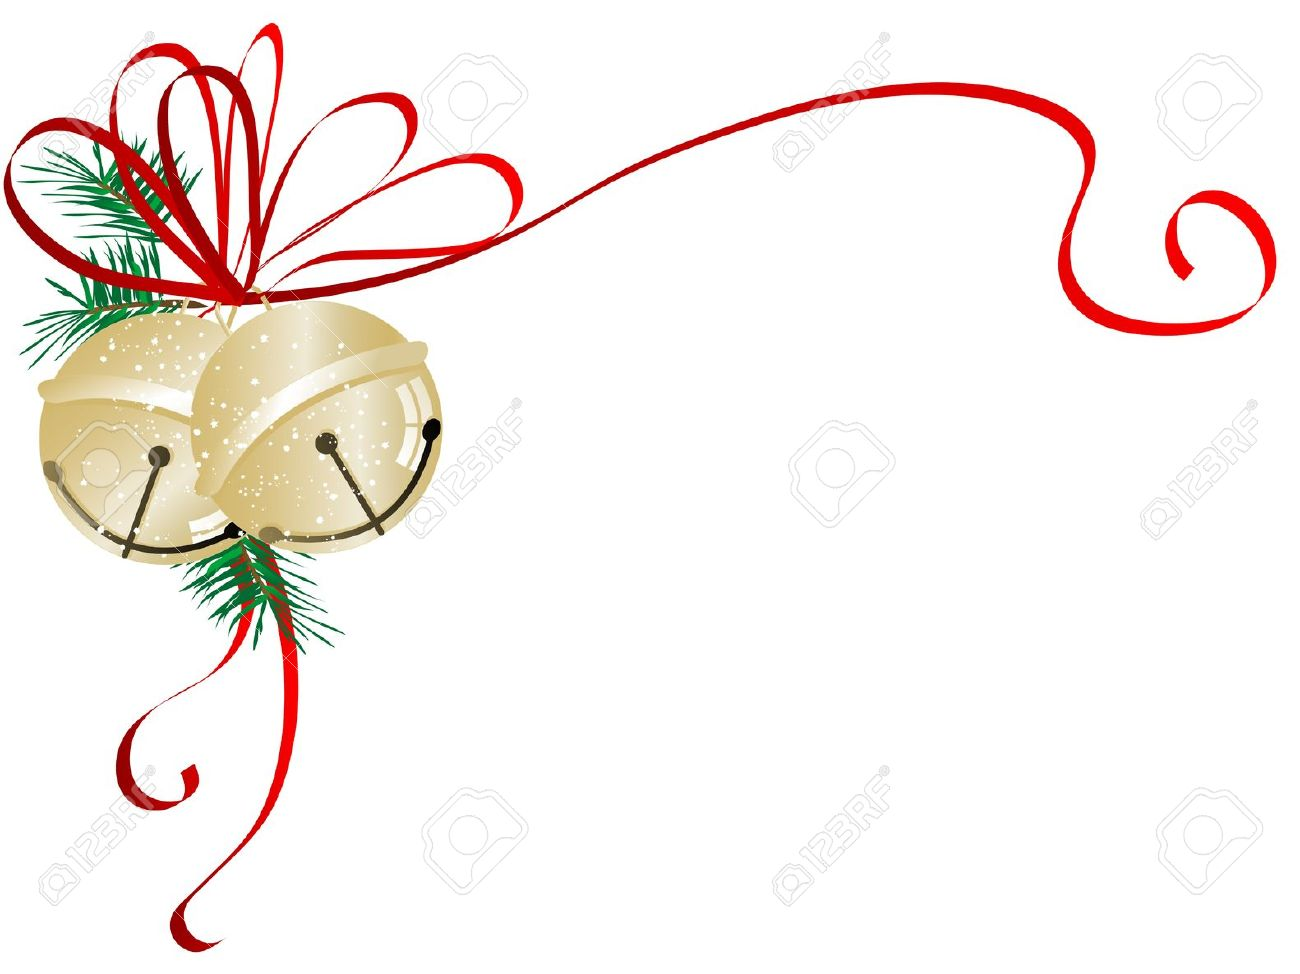 jingle bell: Two golden jingle bells with red ribbon